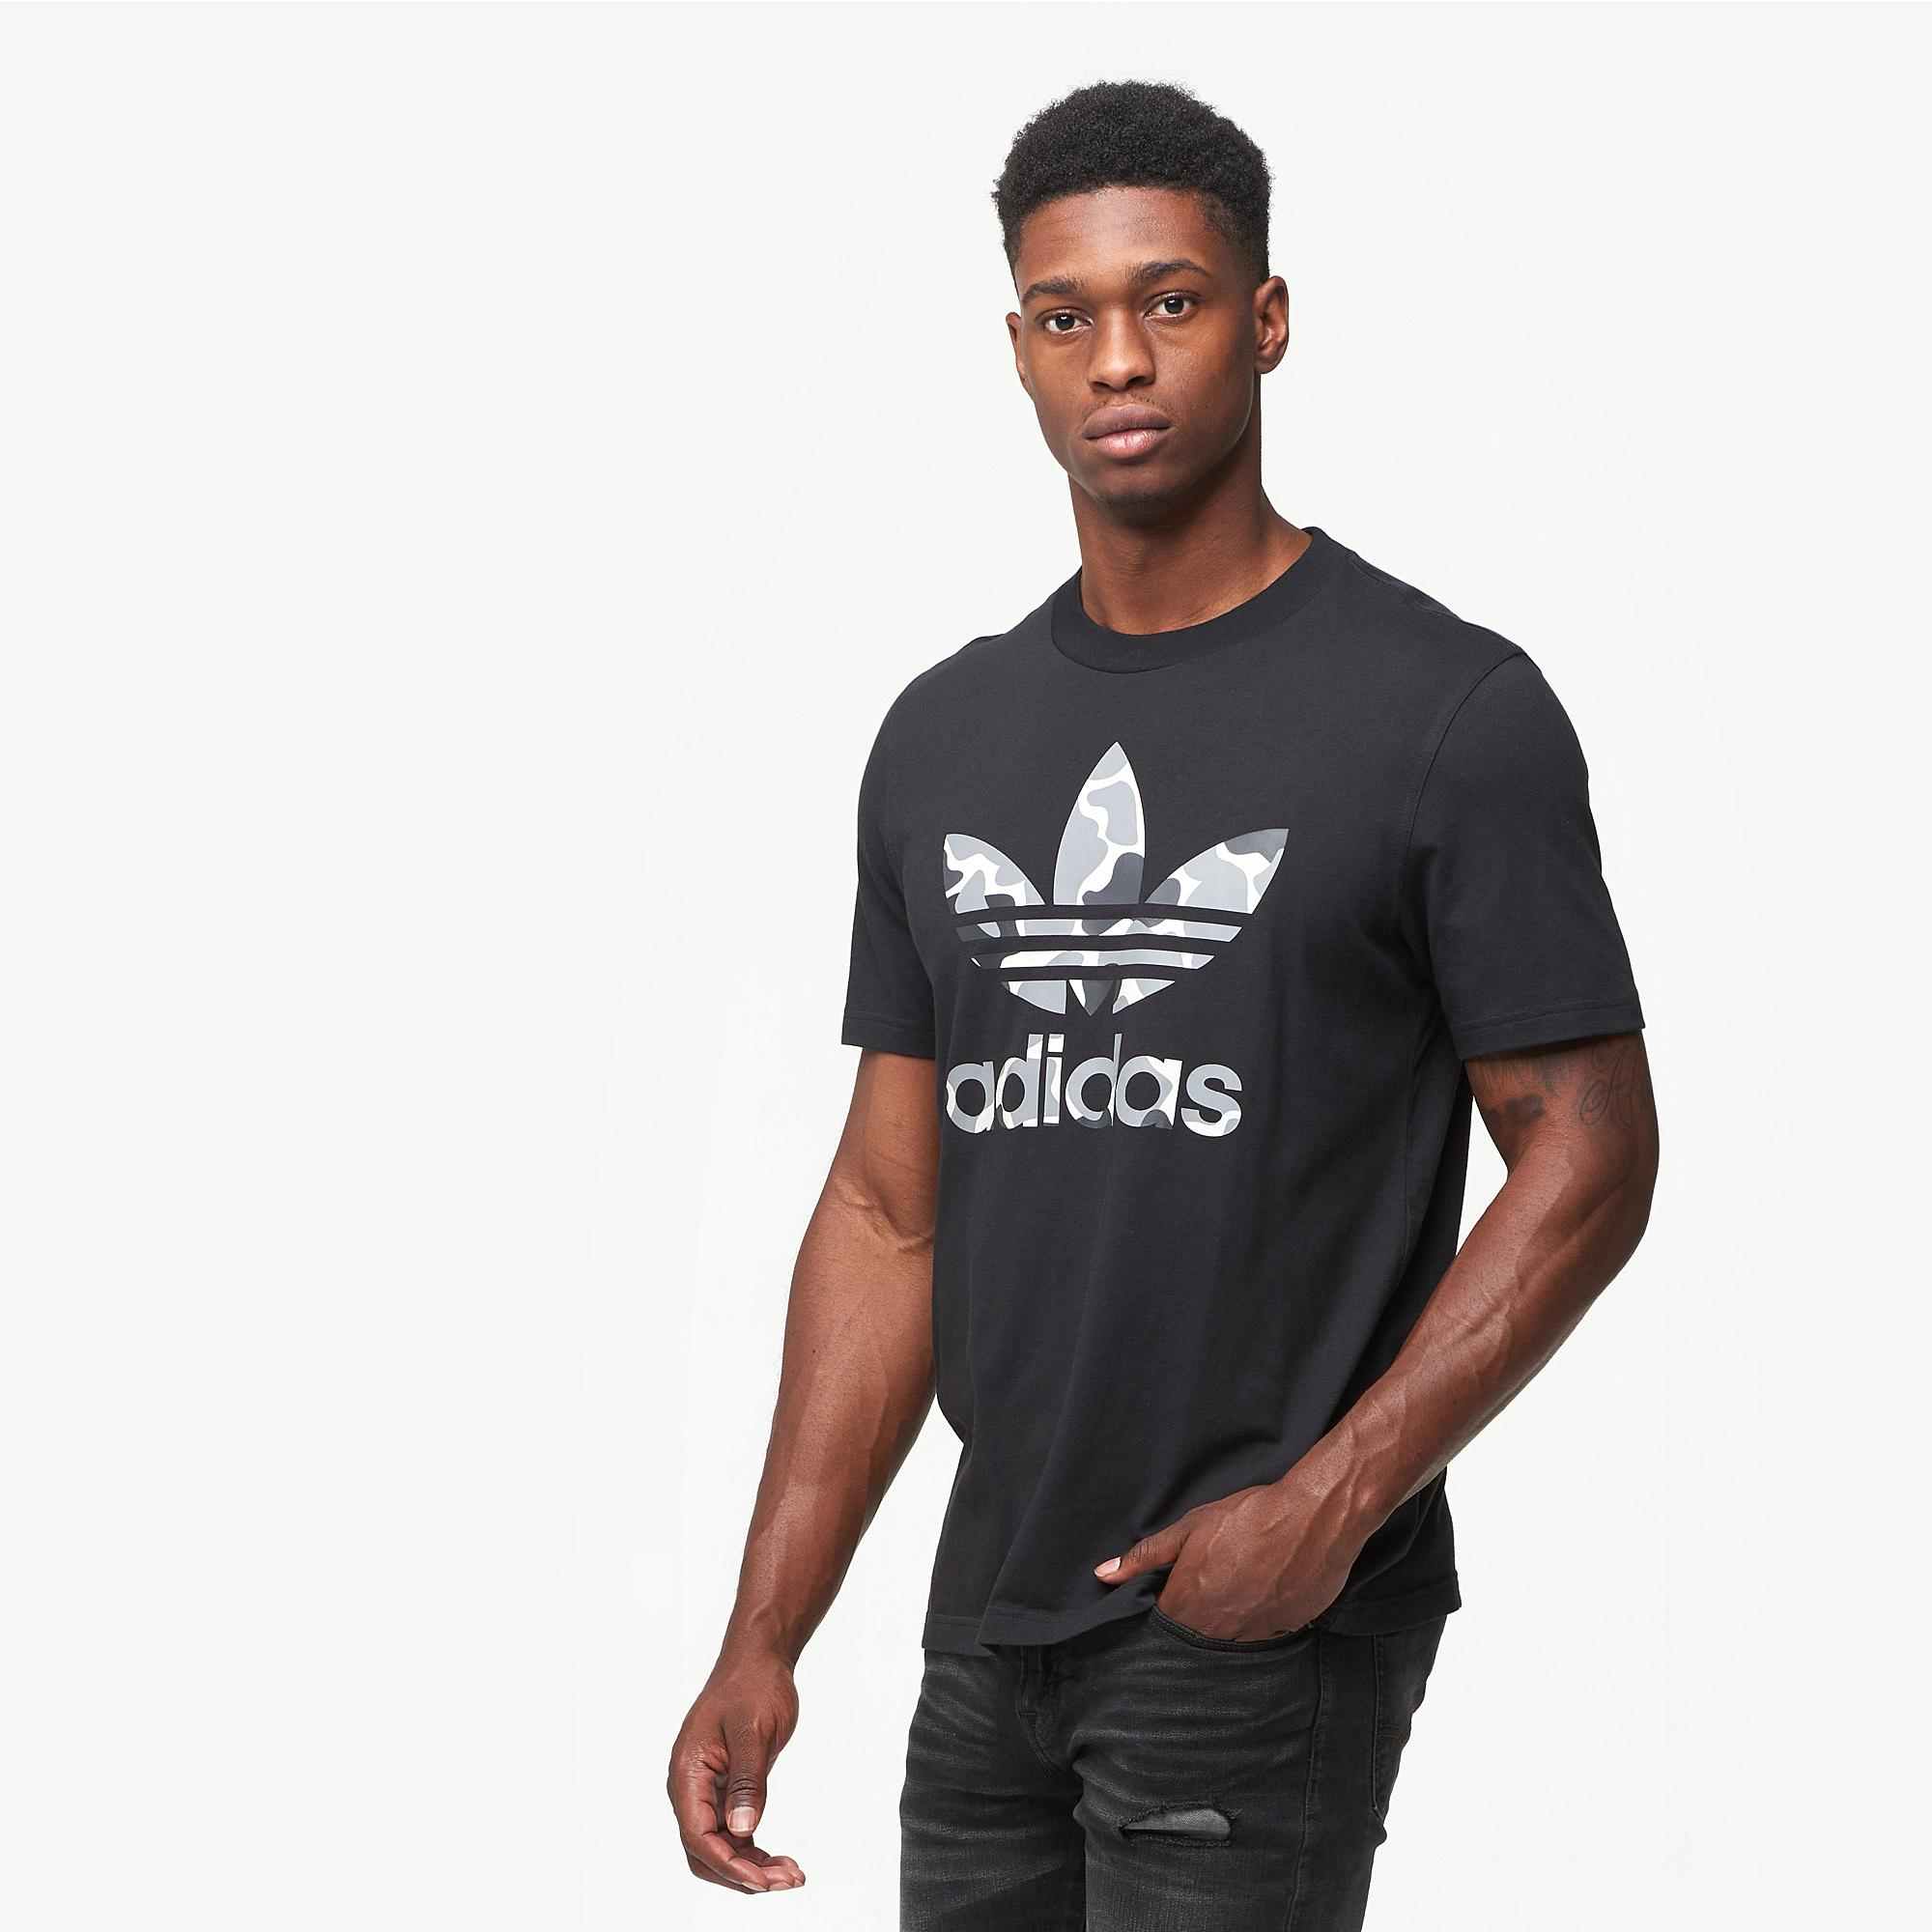 494e805b5 adidas Originals. Men's Black Camo Trefoil T-shirt. $40 $25 From Champs  Sports